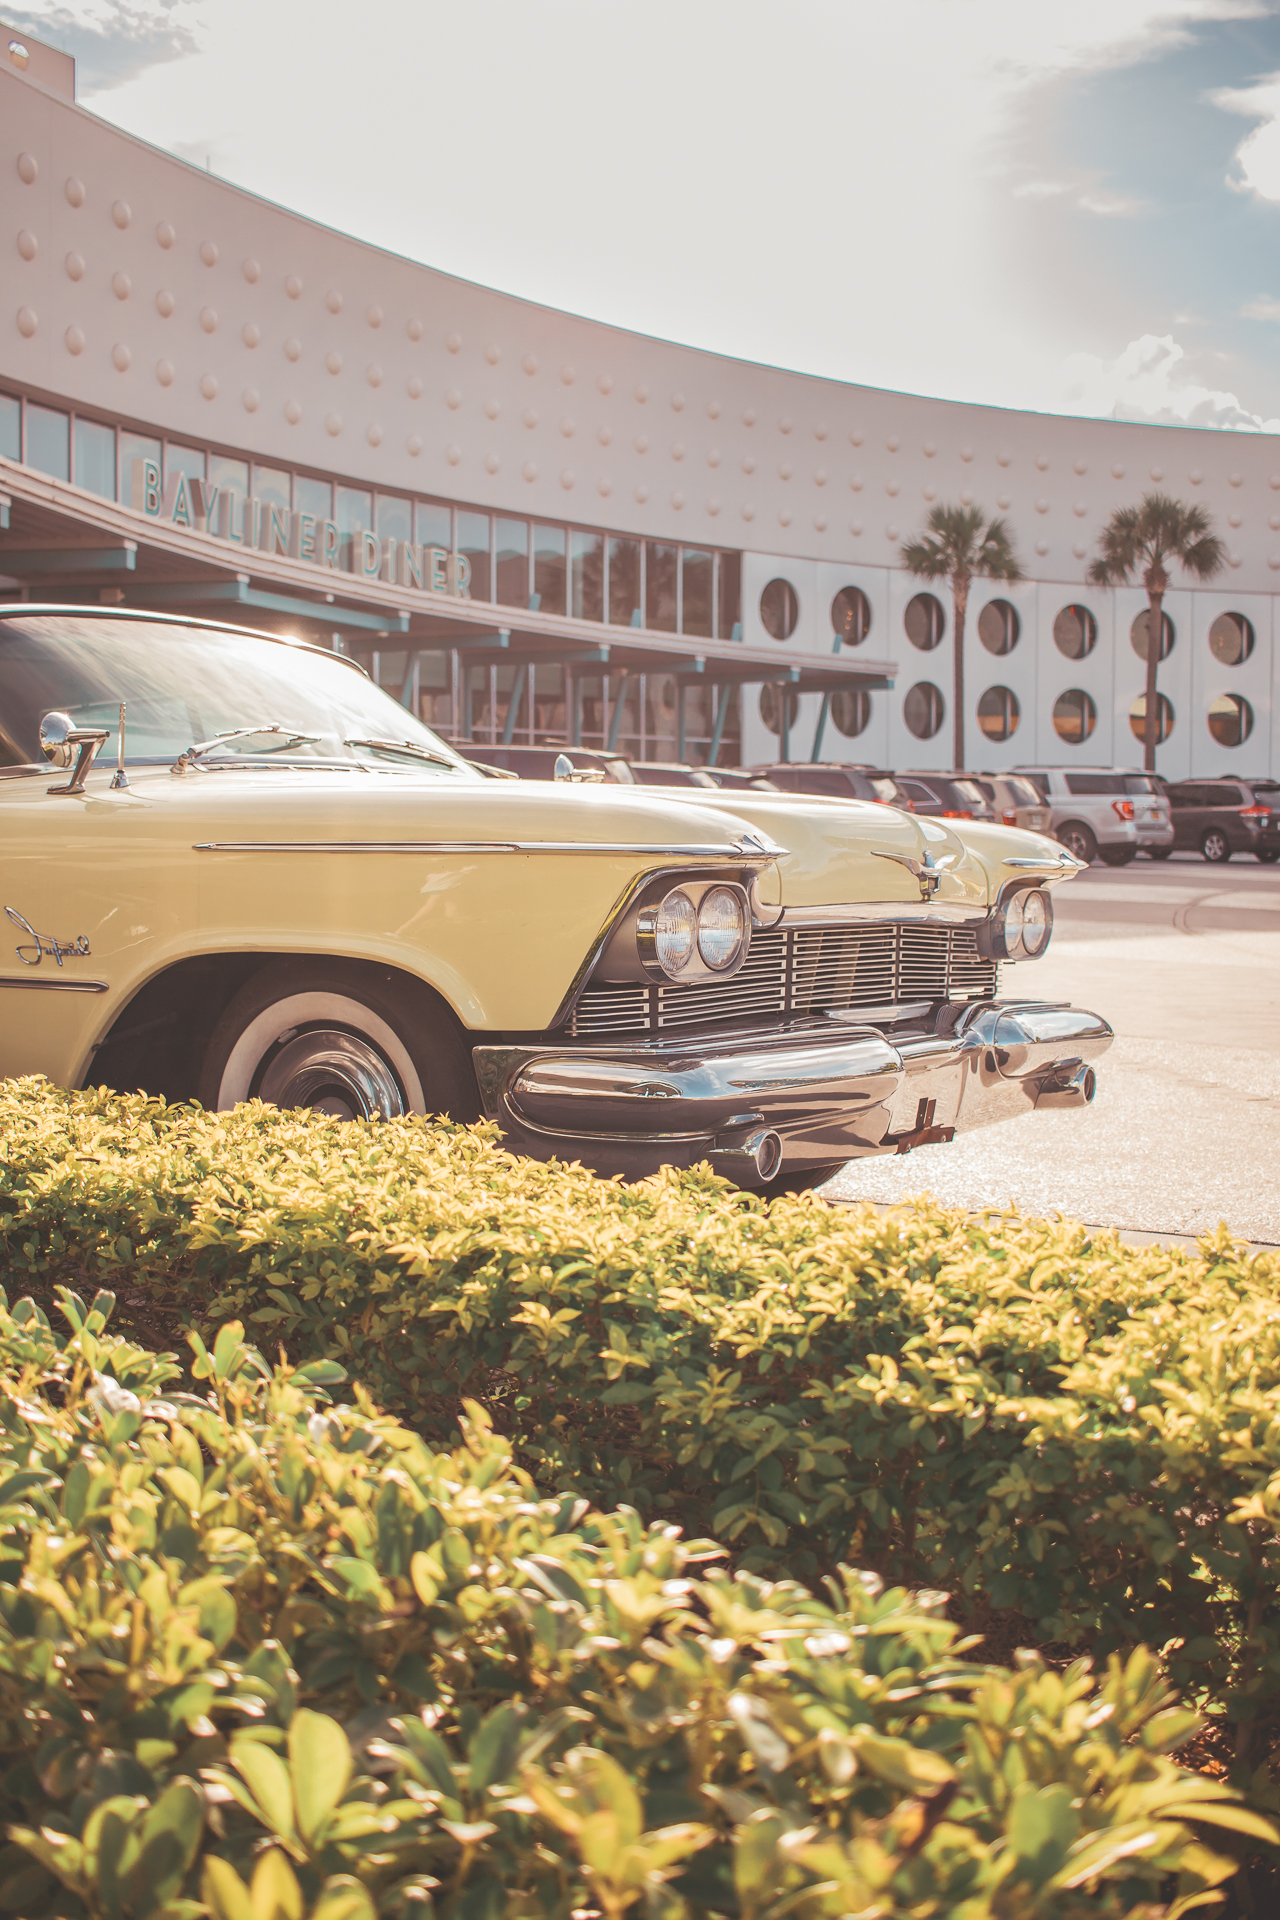 Being on property at Cabana Bay takes you back to such an aesthetically pleasing era - especially for cars!